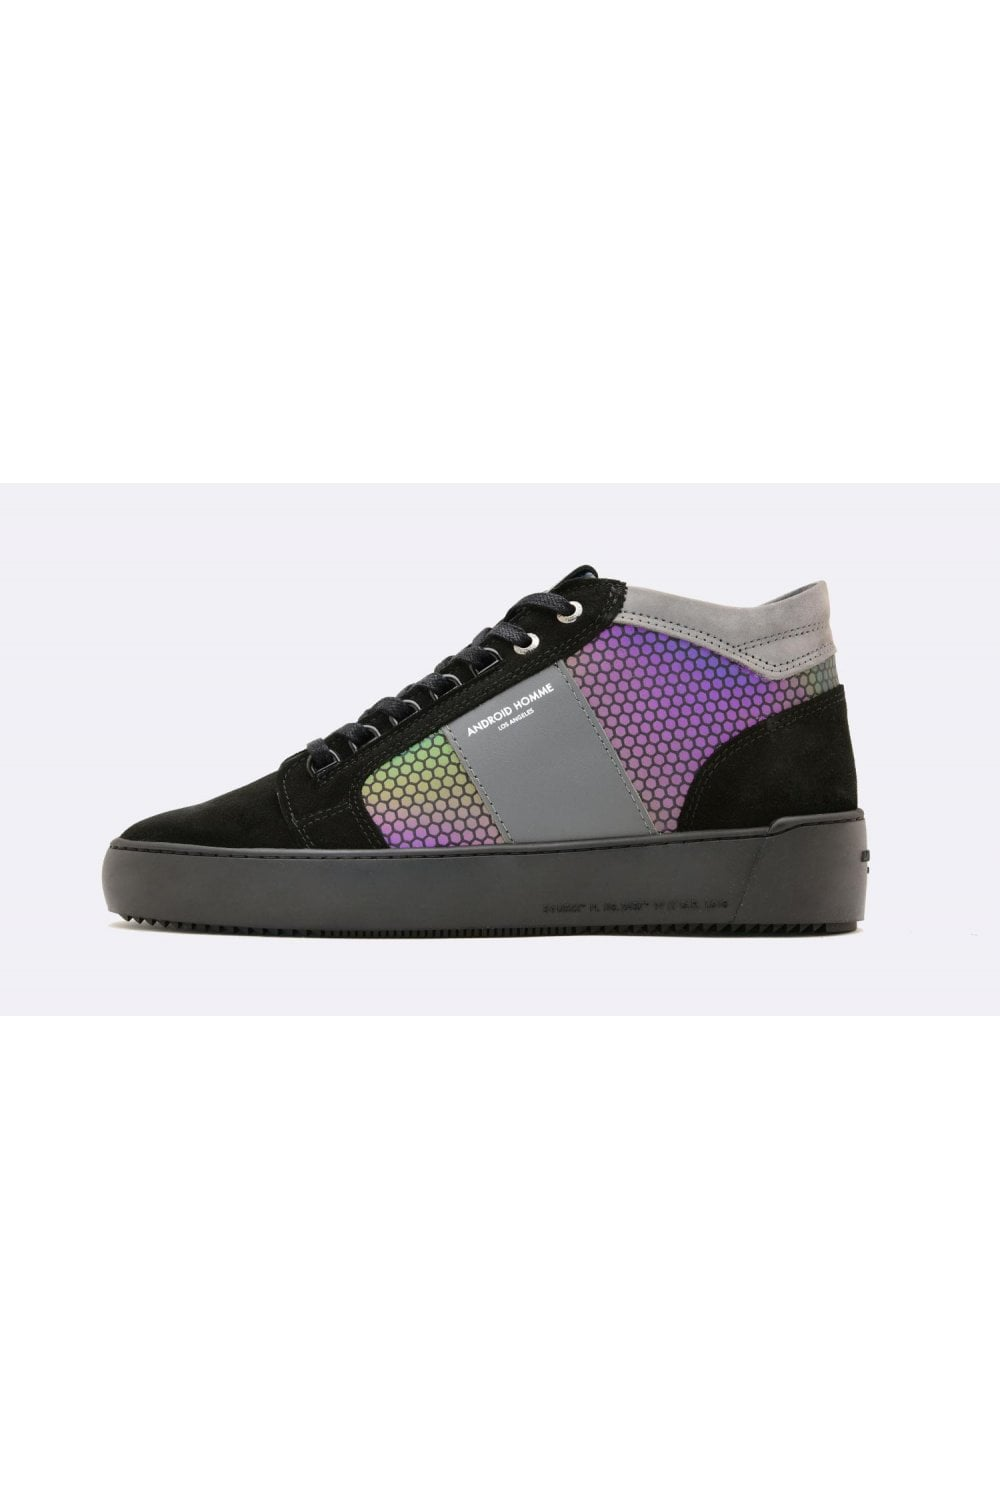 Android Homme Propulsion Reflect Mid Geo Black Hex Men S Footwear From Intro Uk